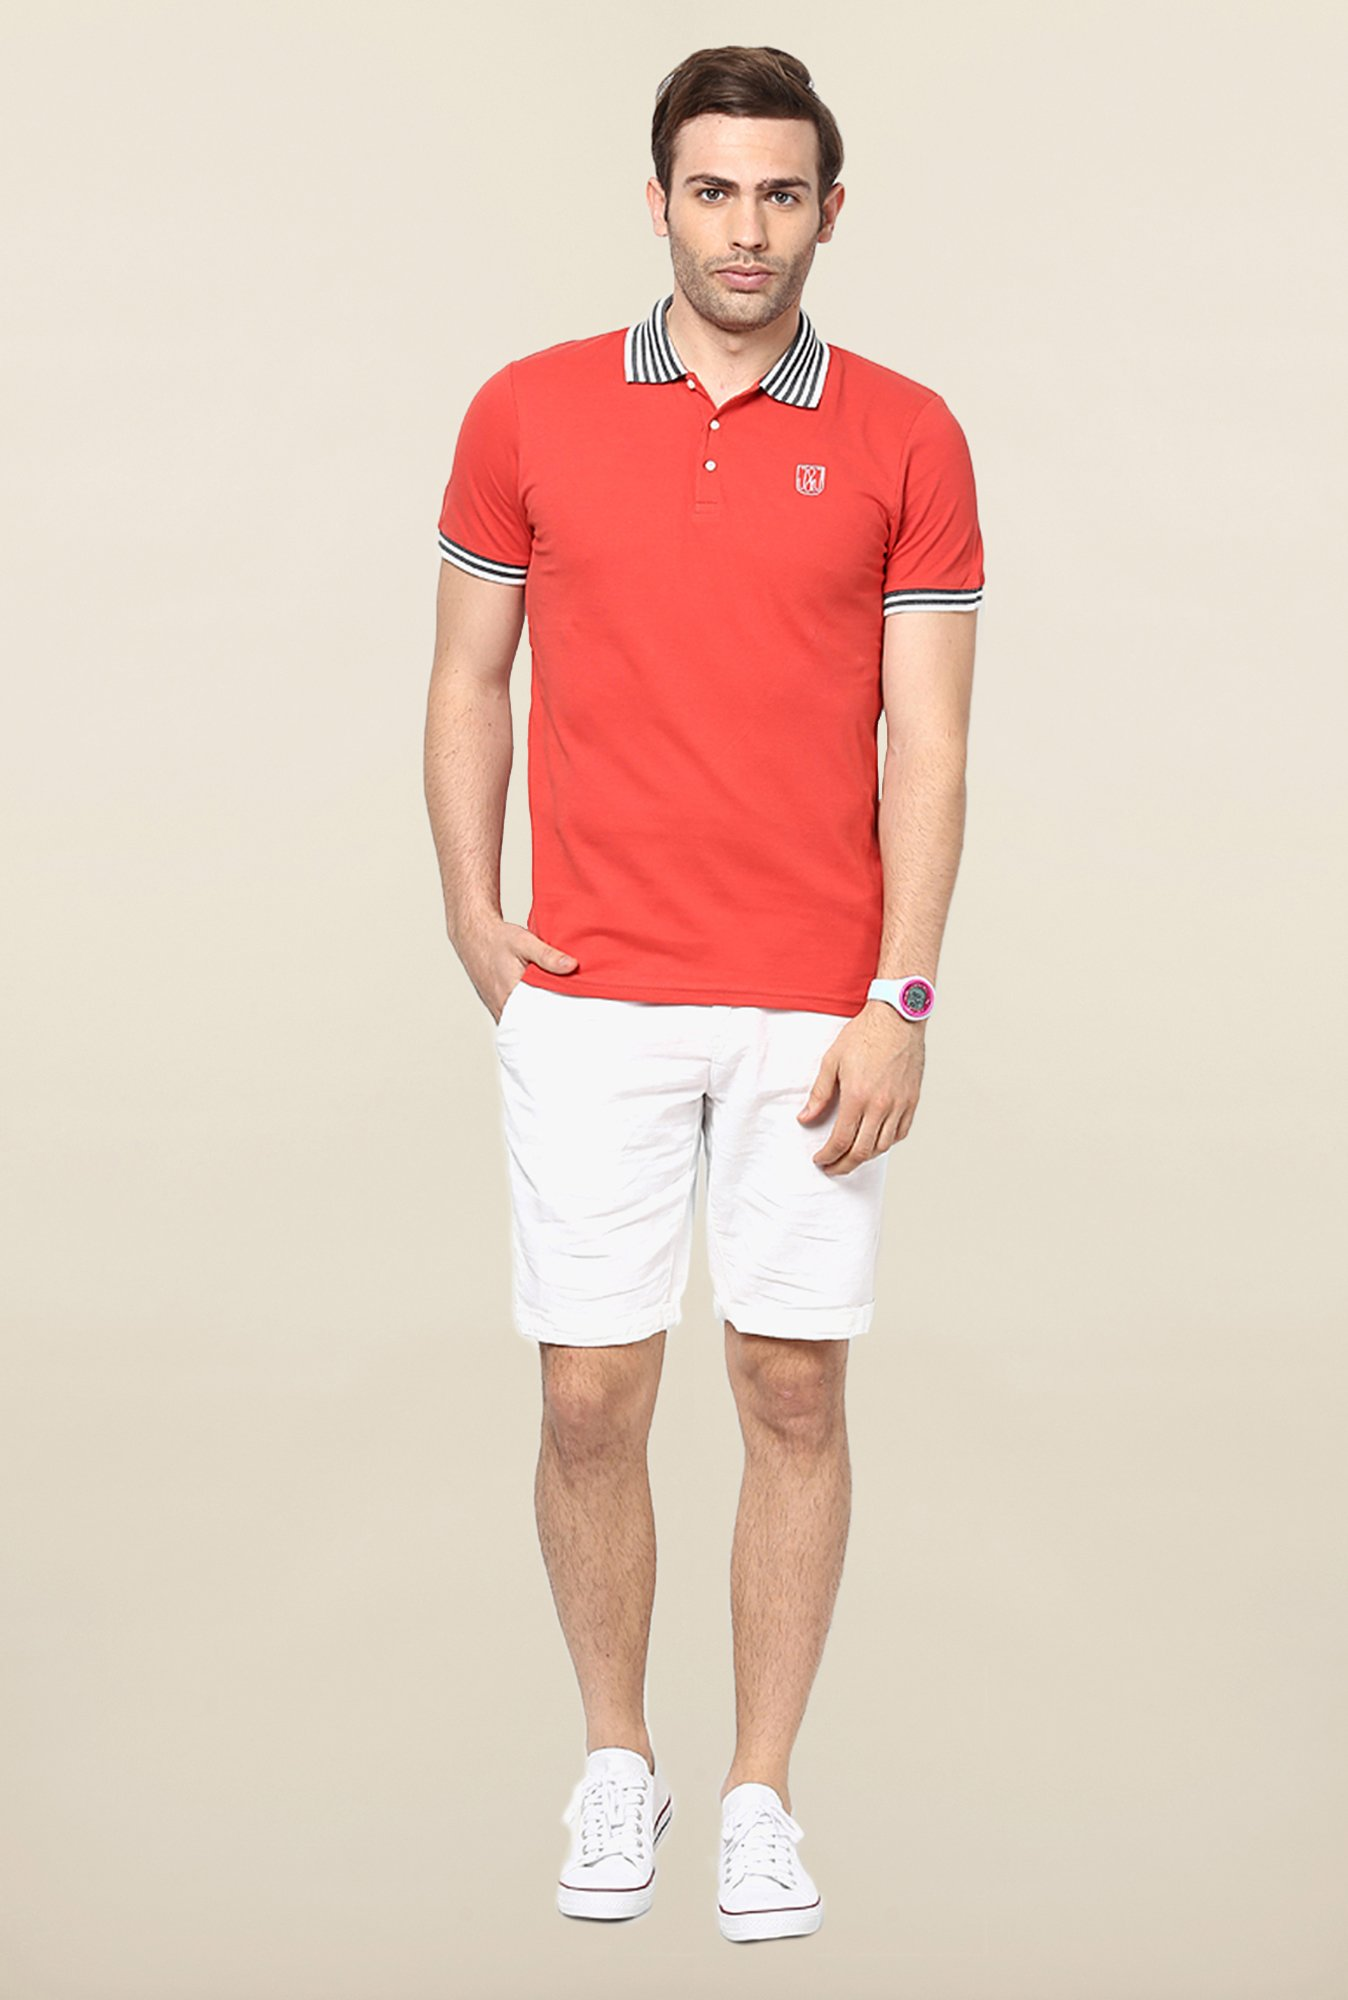 Jack & Jones Red Solid Polo T-Shirt